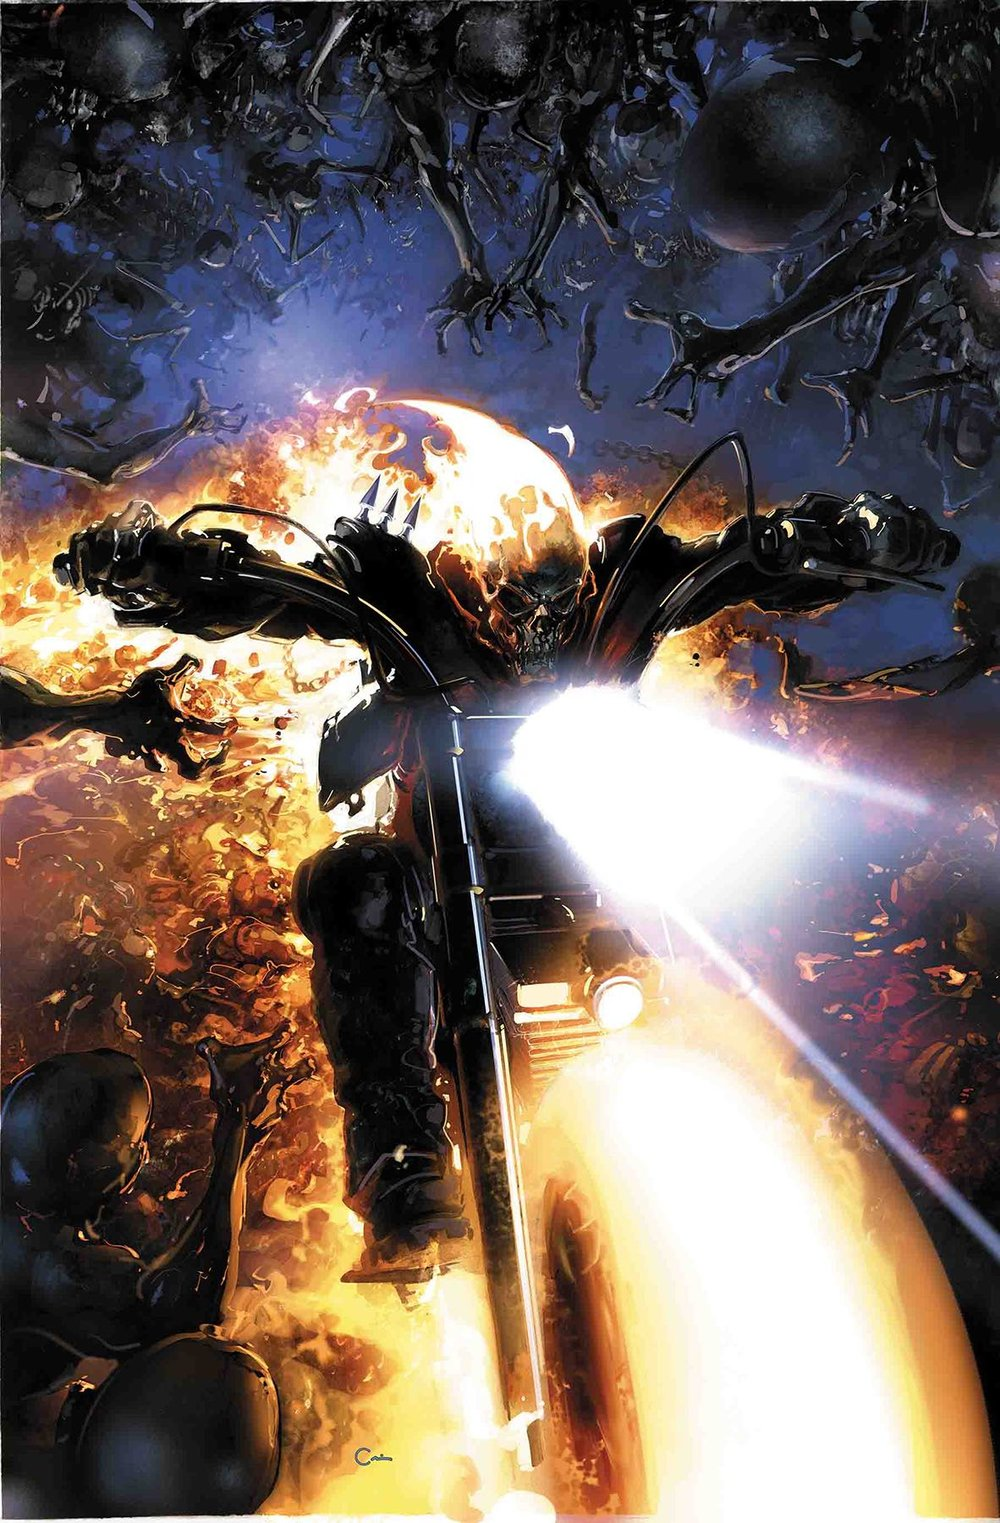 Episode 27 Cover of the Week! - (Marvel) Damnation: Johnny Blaze, Ghost Rider #1Cover by Clayton CrainWritten by Christopher SebelaIllustrated by Phil NotoDid the Content Match the Drapes - Yes!